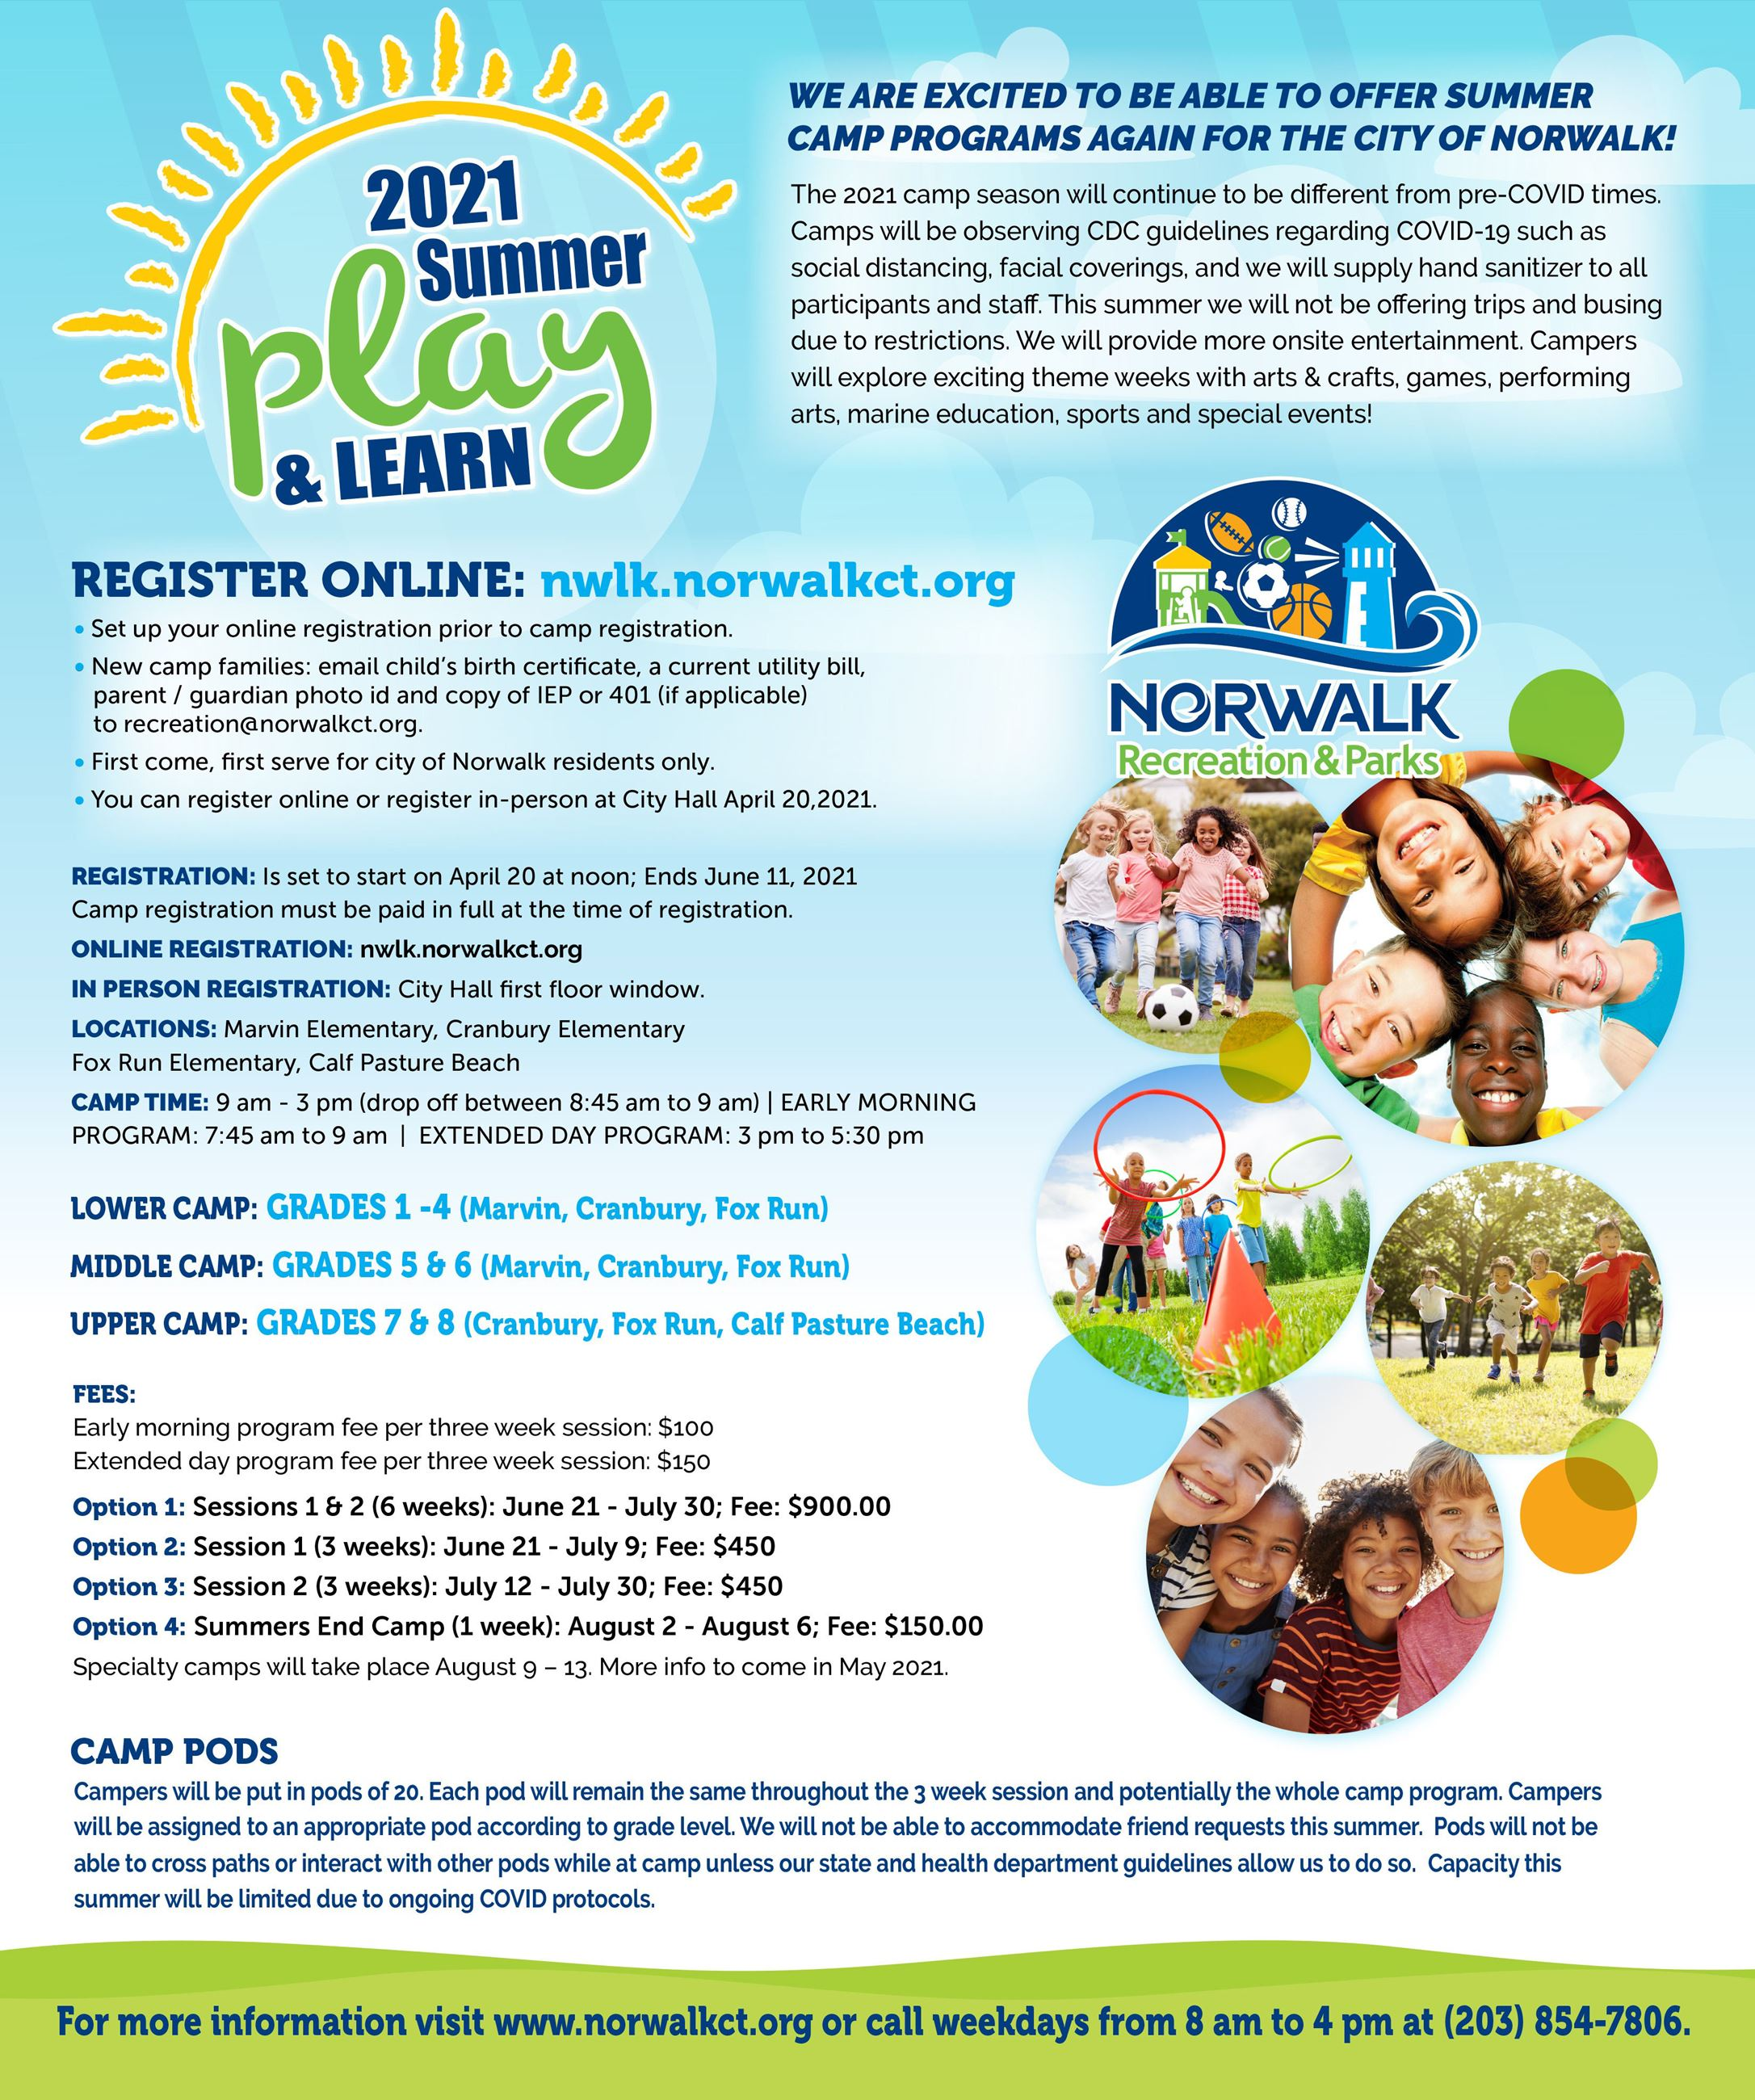 2021 Summer Play and Learn updated flyer